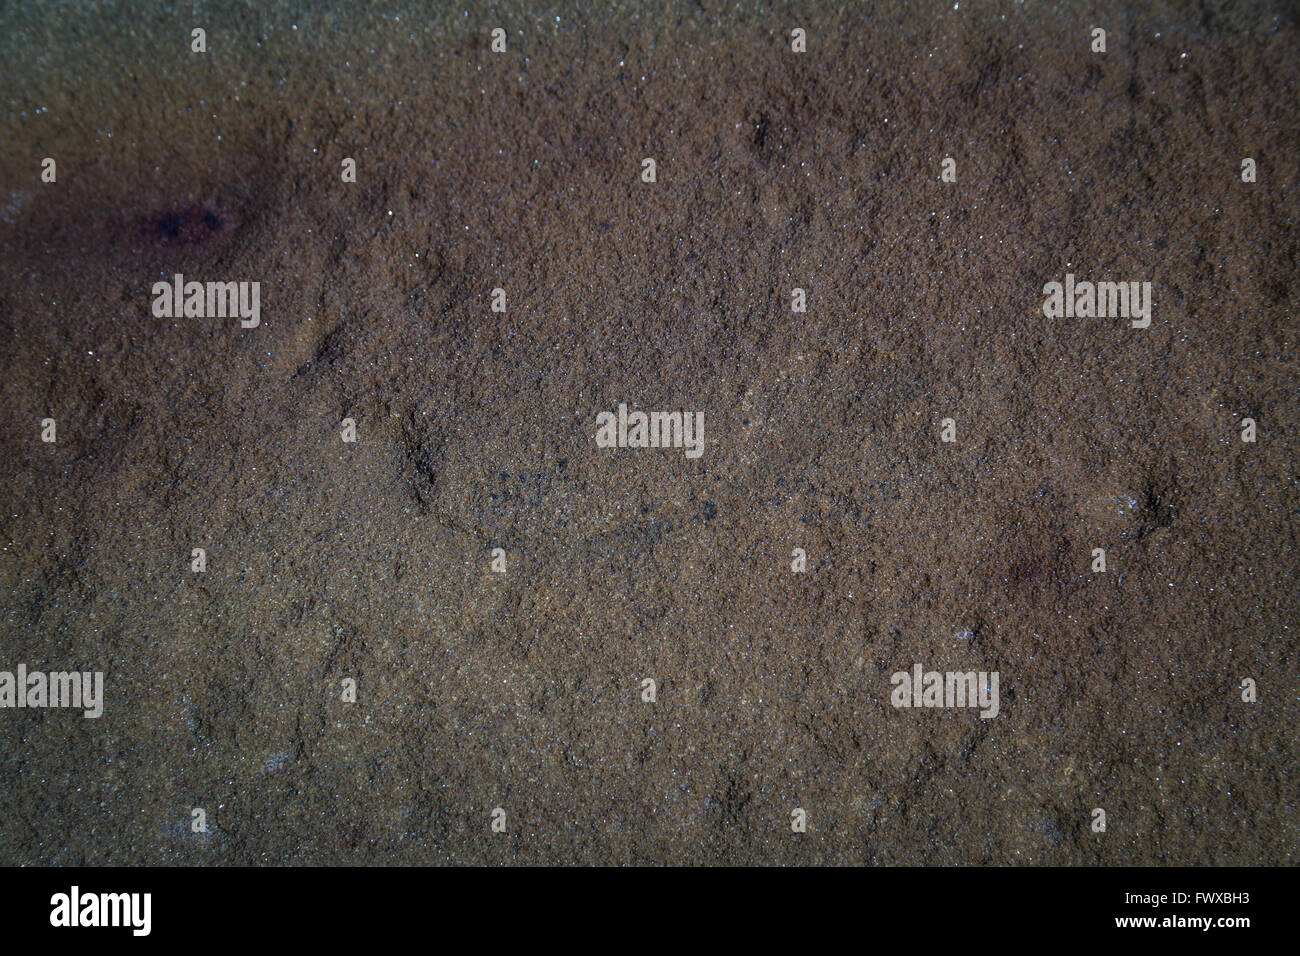 abstract background texture with vignetting. closeup - Stock Image